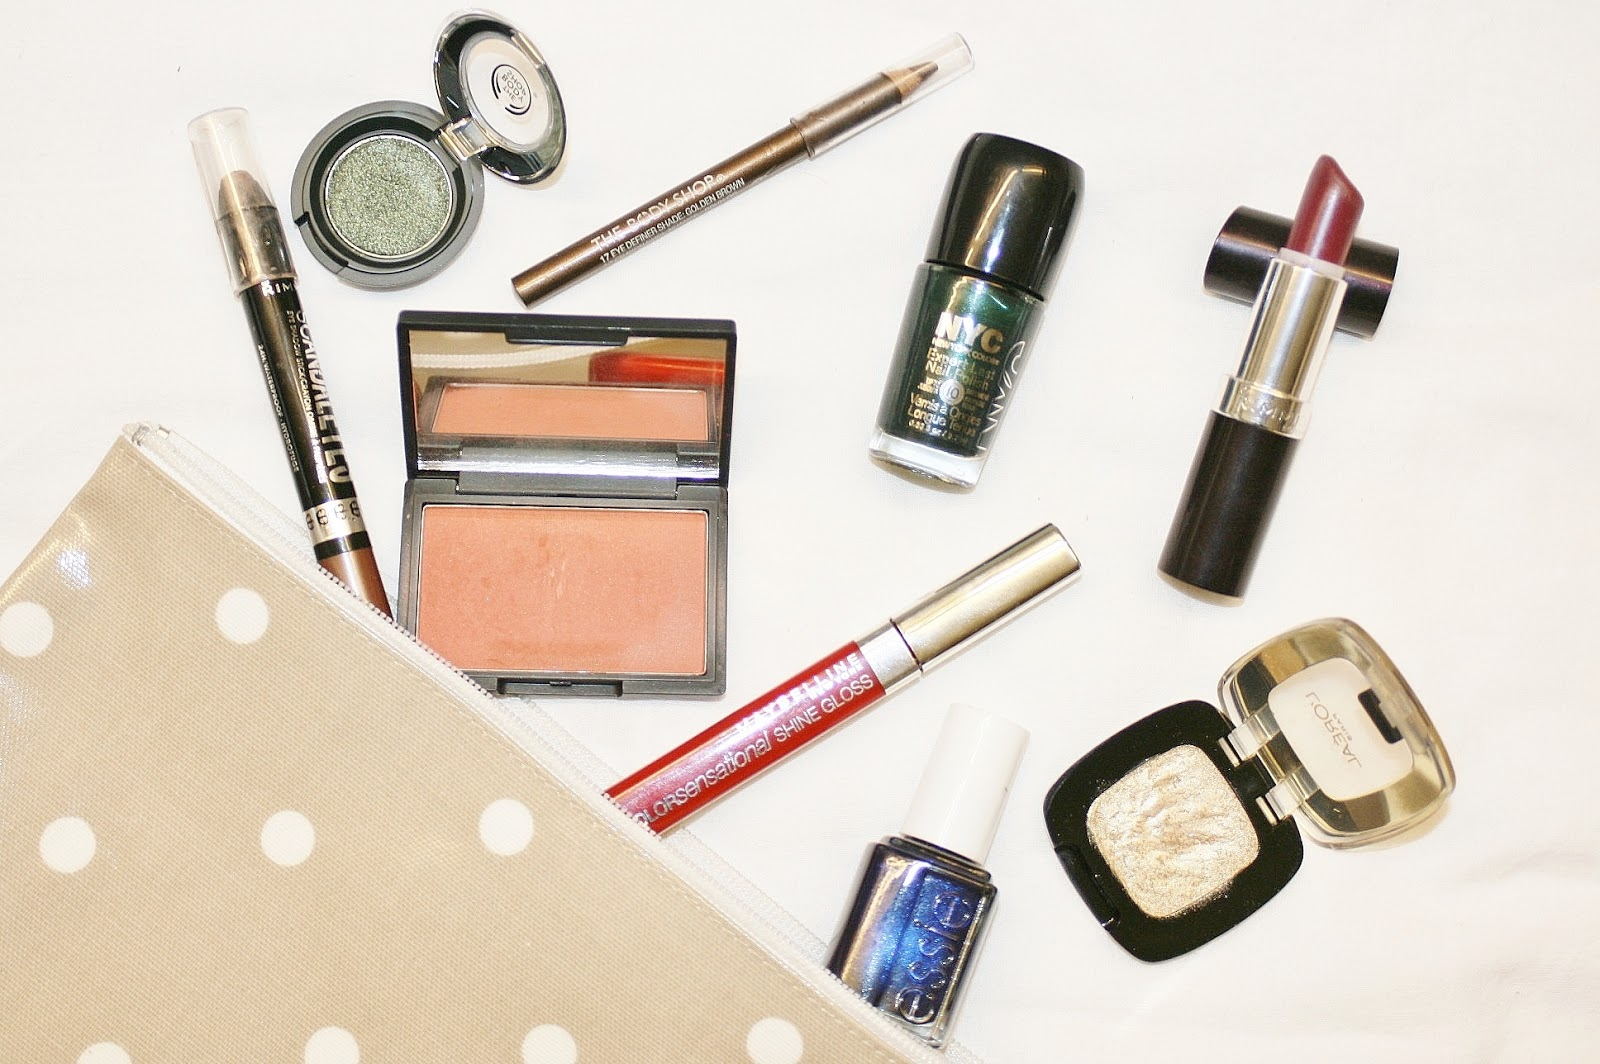 Penney Chic beauty winter makeup drugstore